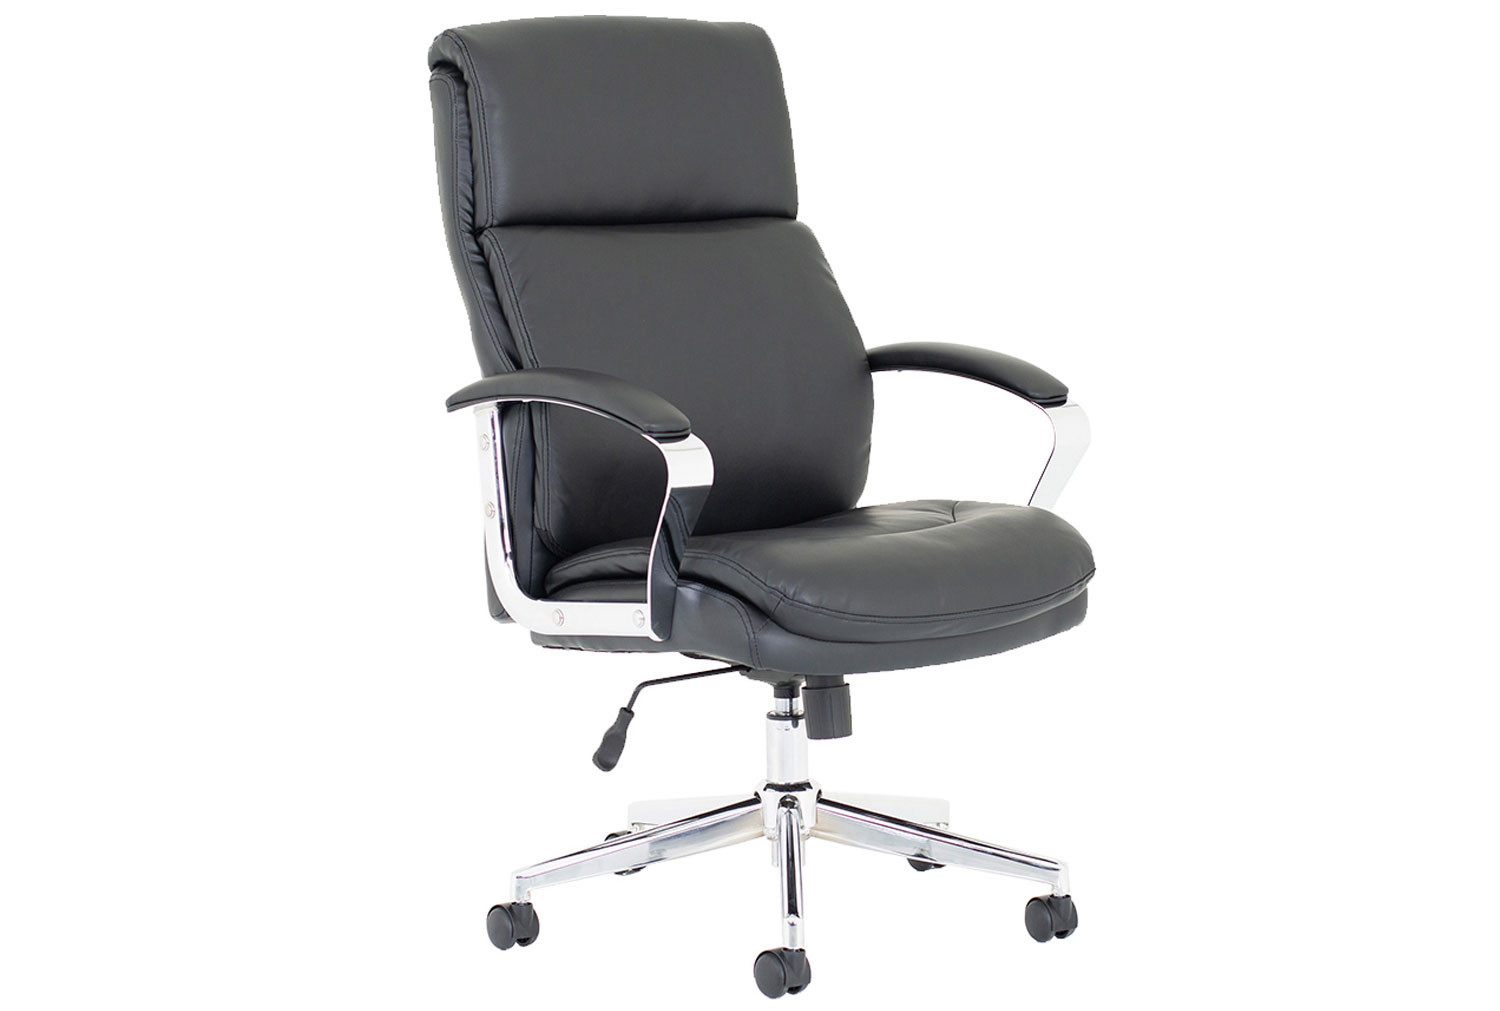 Empire Bonded Leather Executive Chair